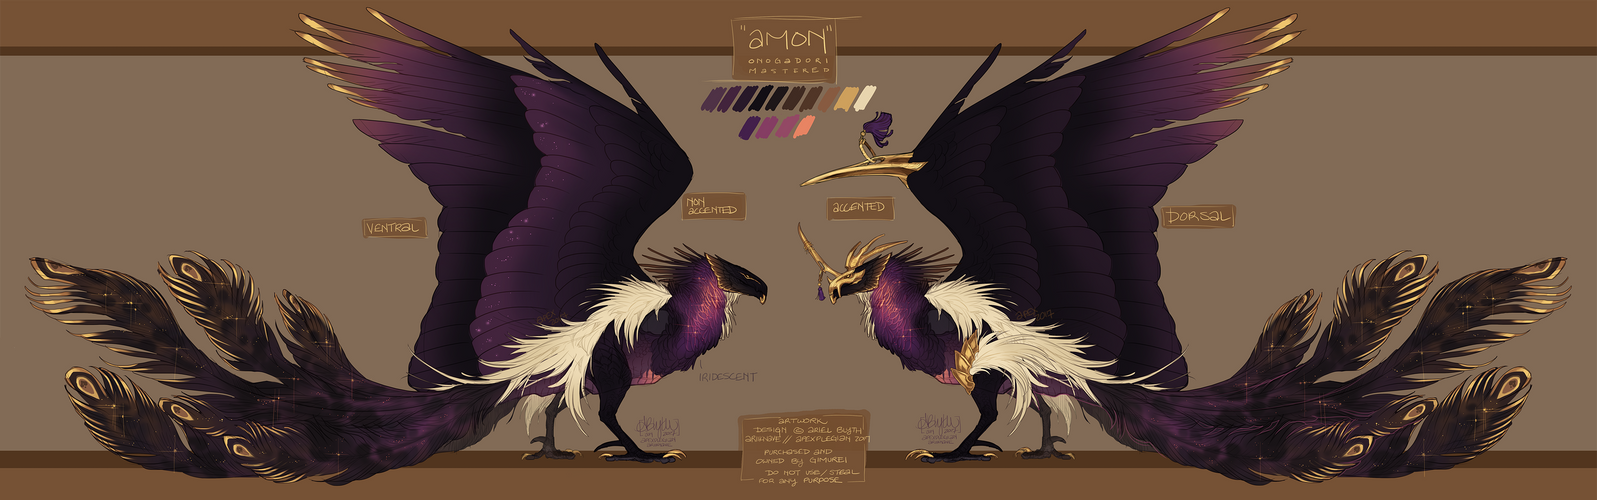 Amon Basic Reference by AriiKnave